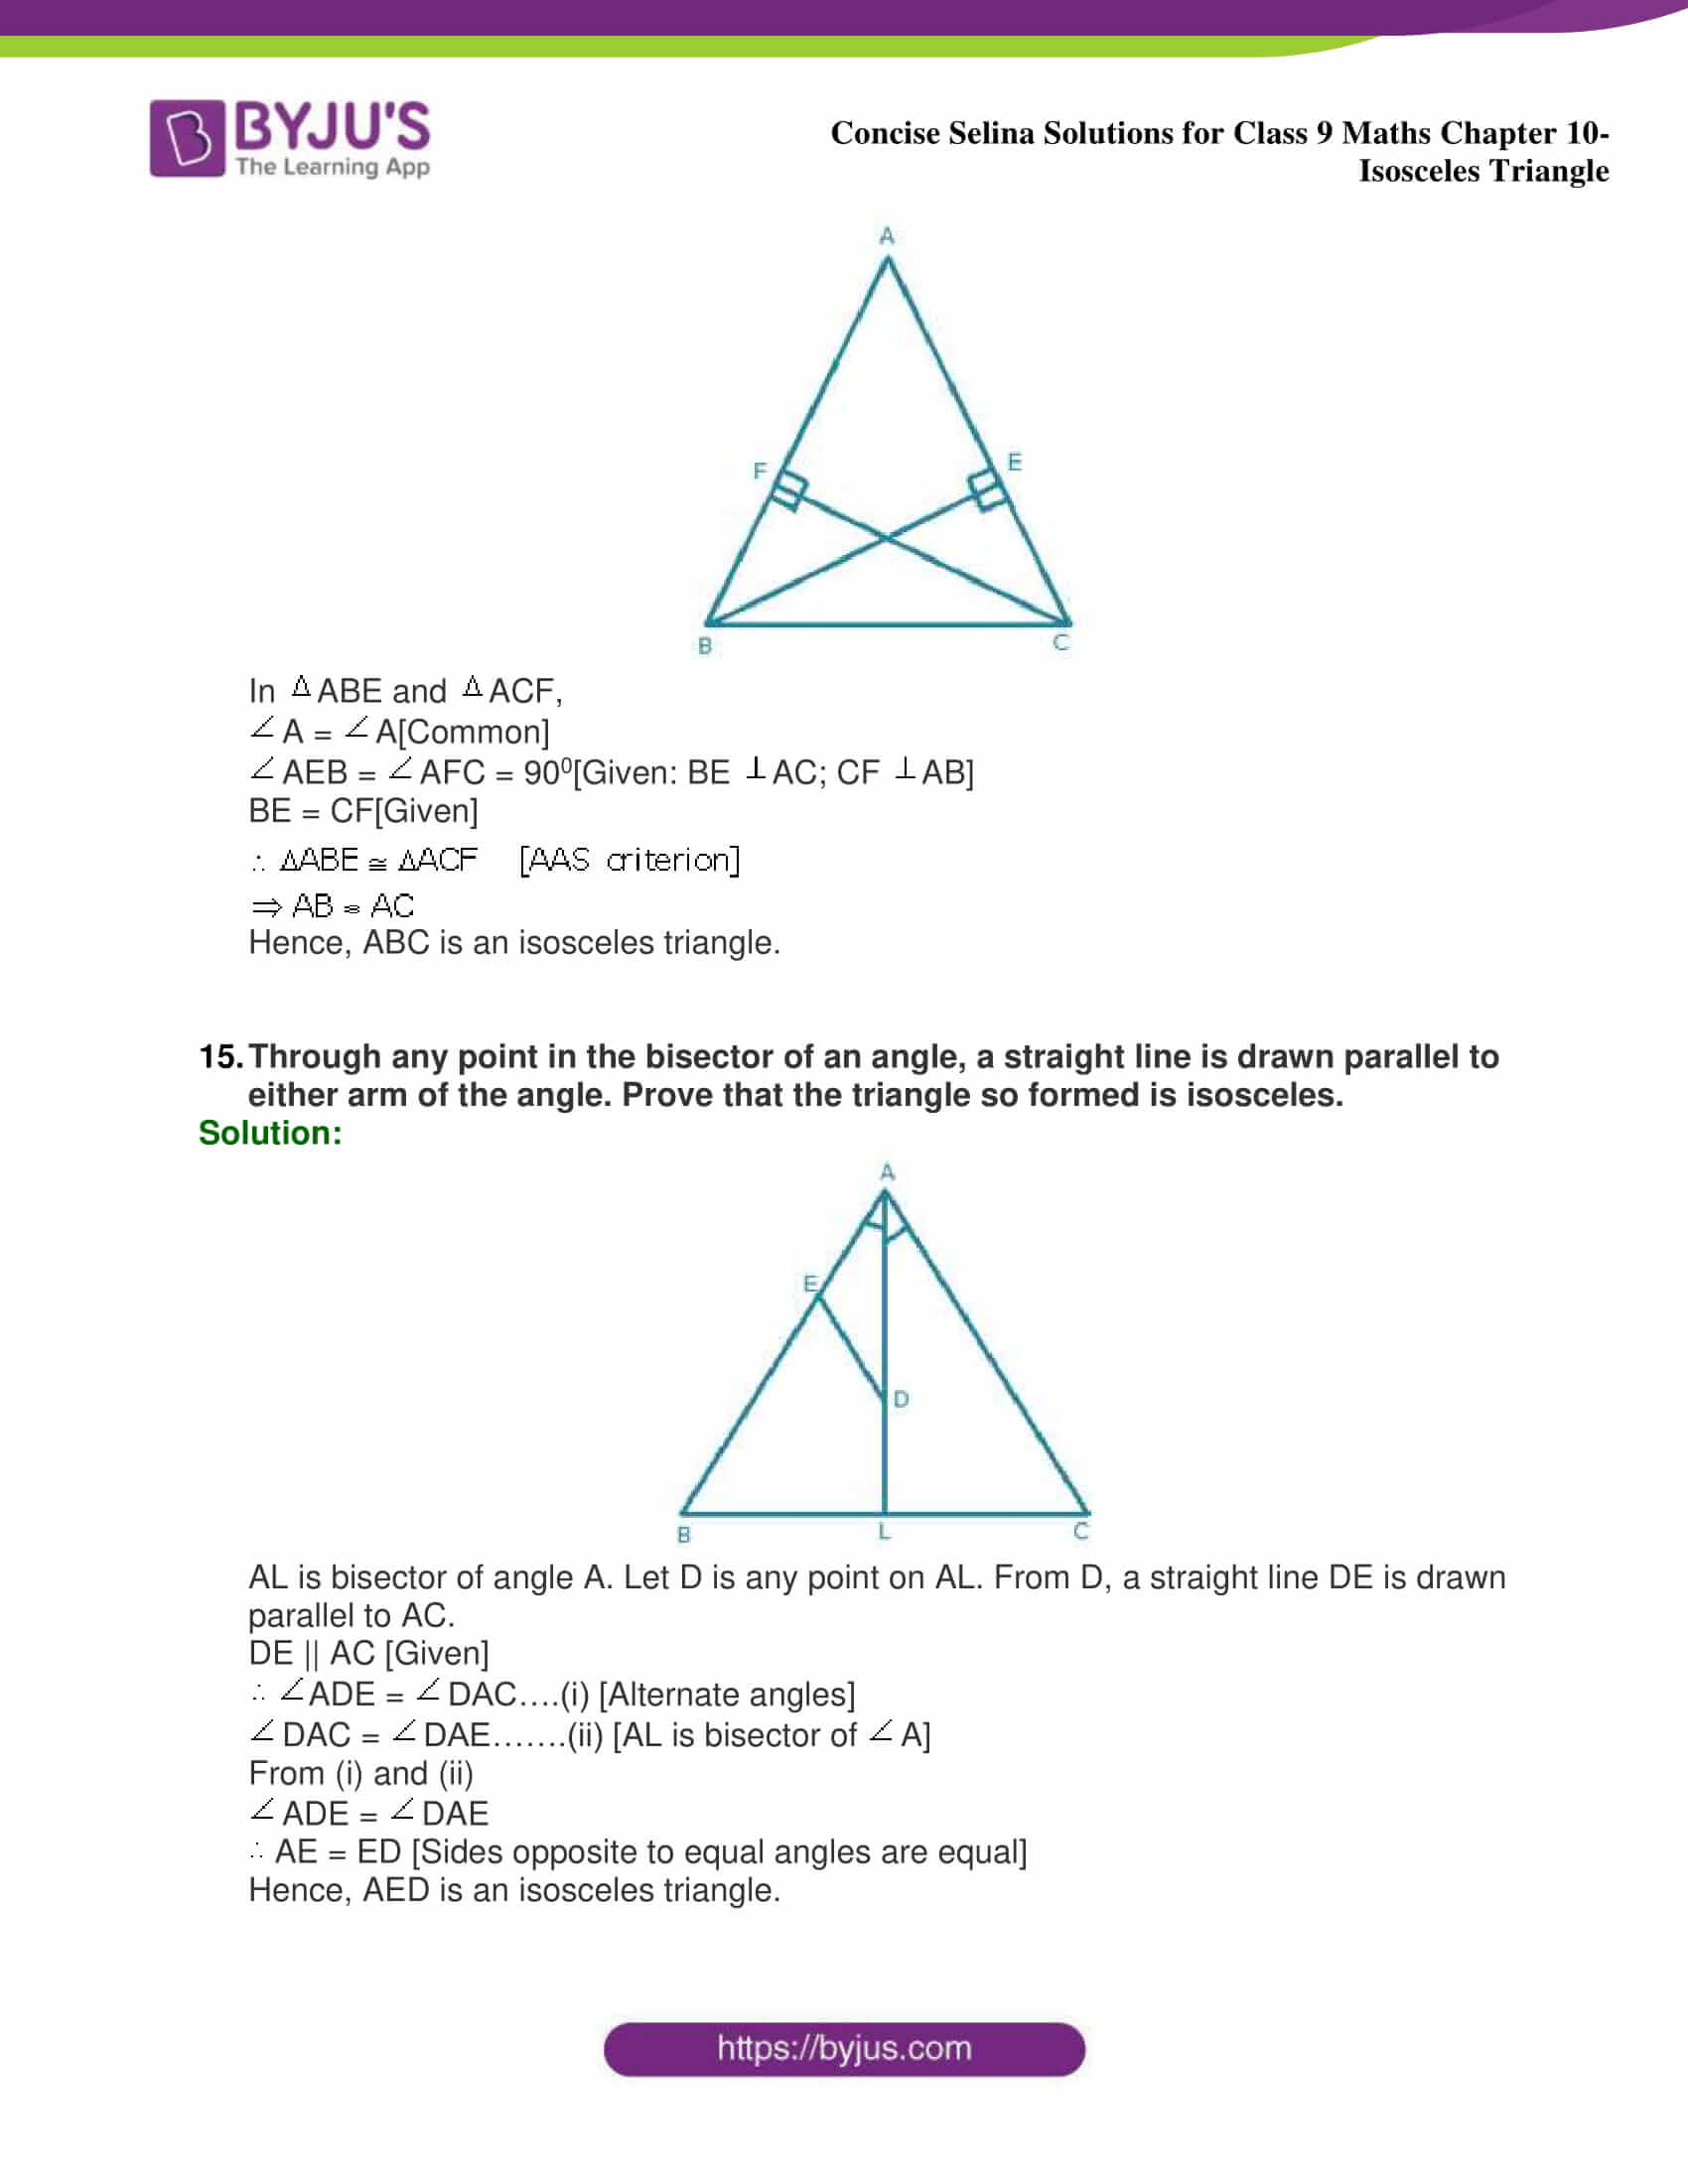 selina Solutions for Class 9 Maths Chapter 10 part 34